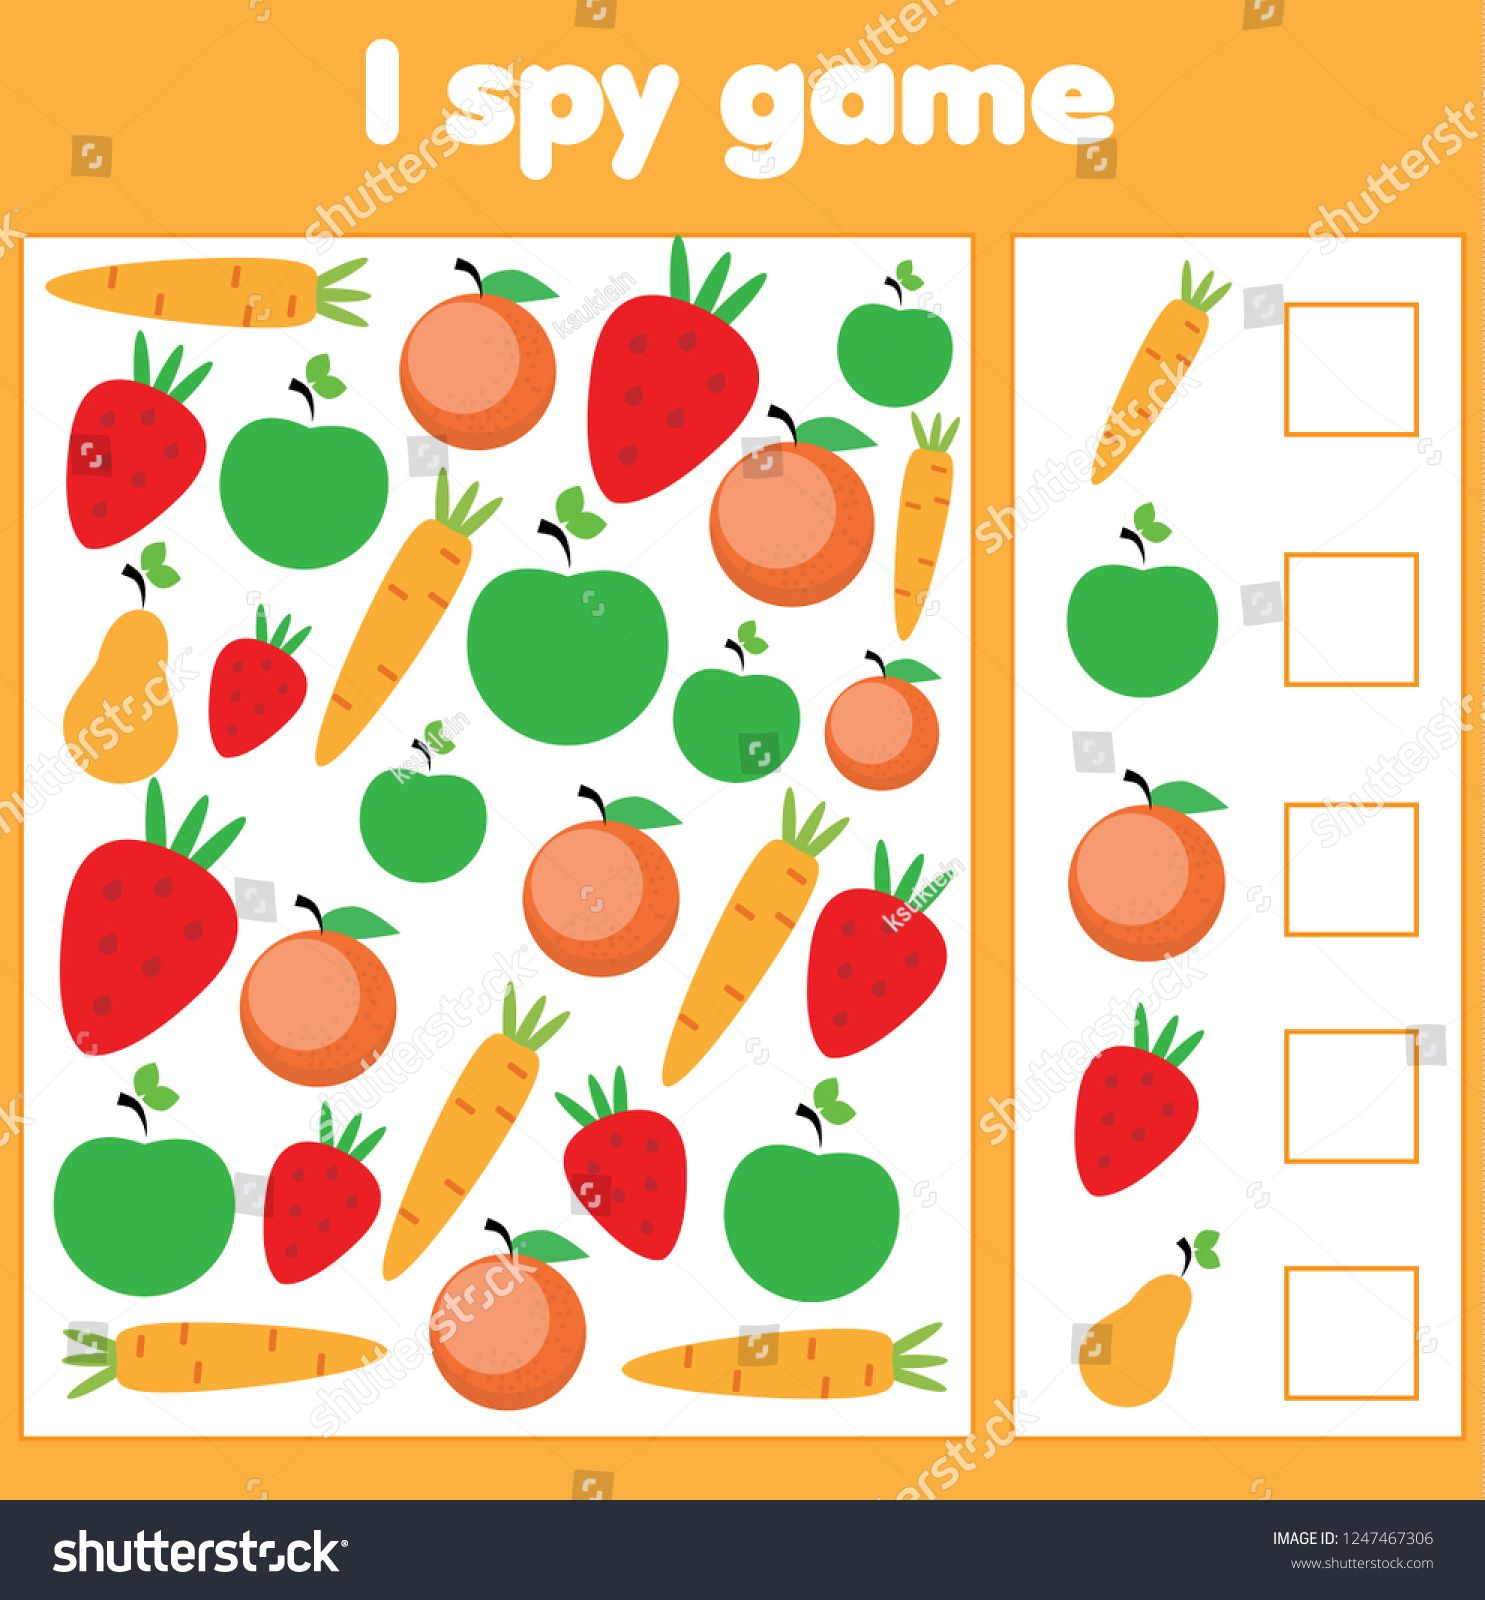 hight resolution of I spy game for toddlers. Find and count vegetables and fruits. Children  educational gam…   Educational games for kids